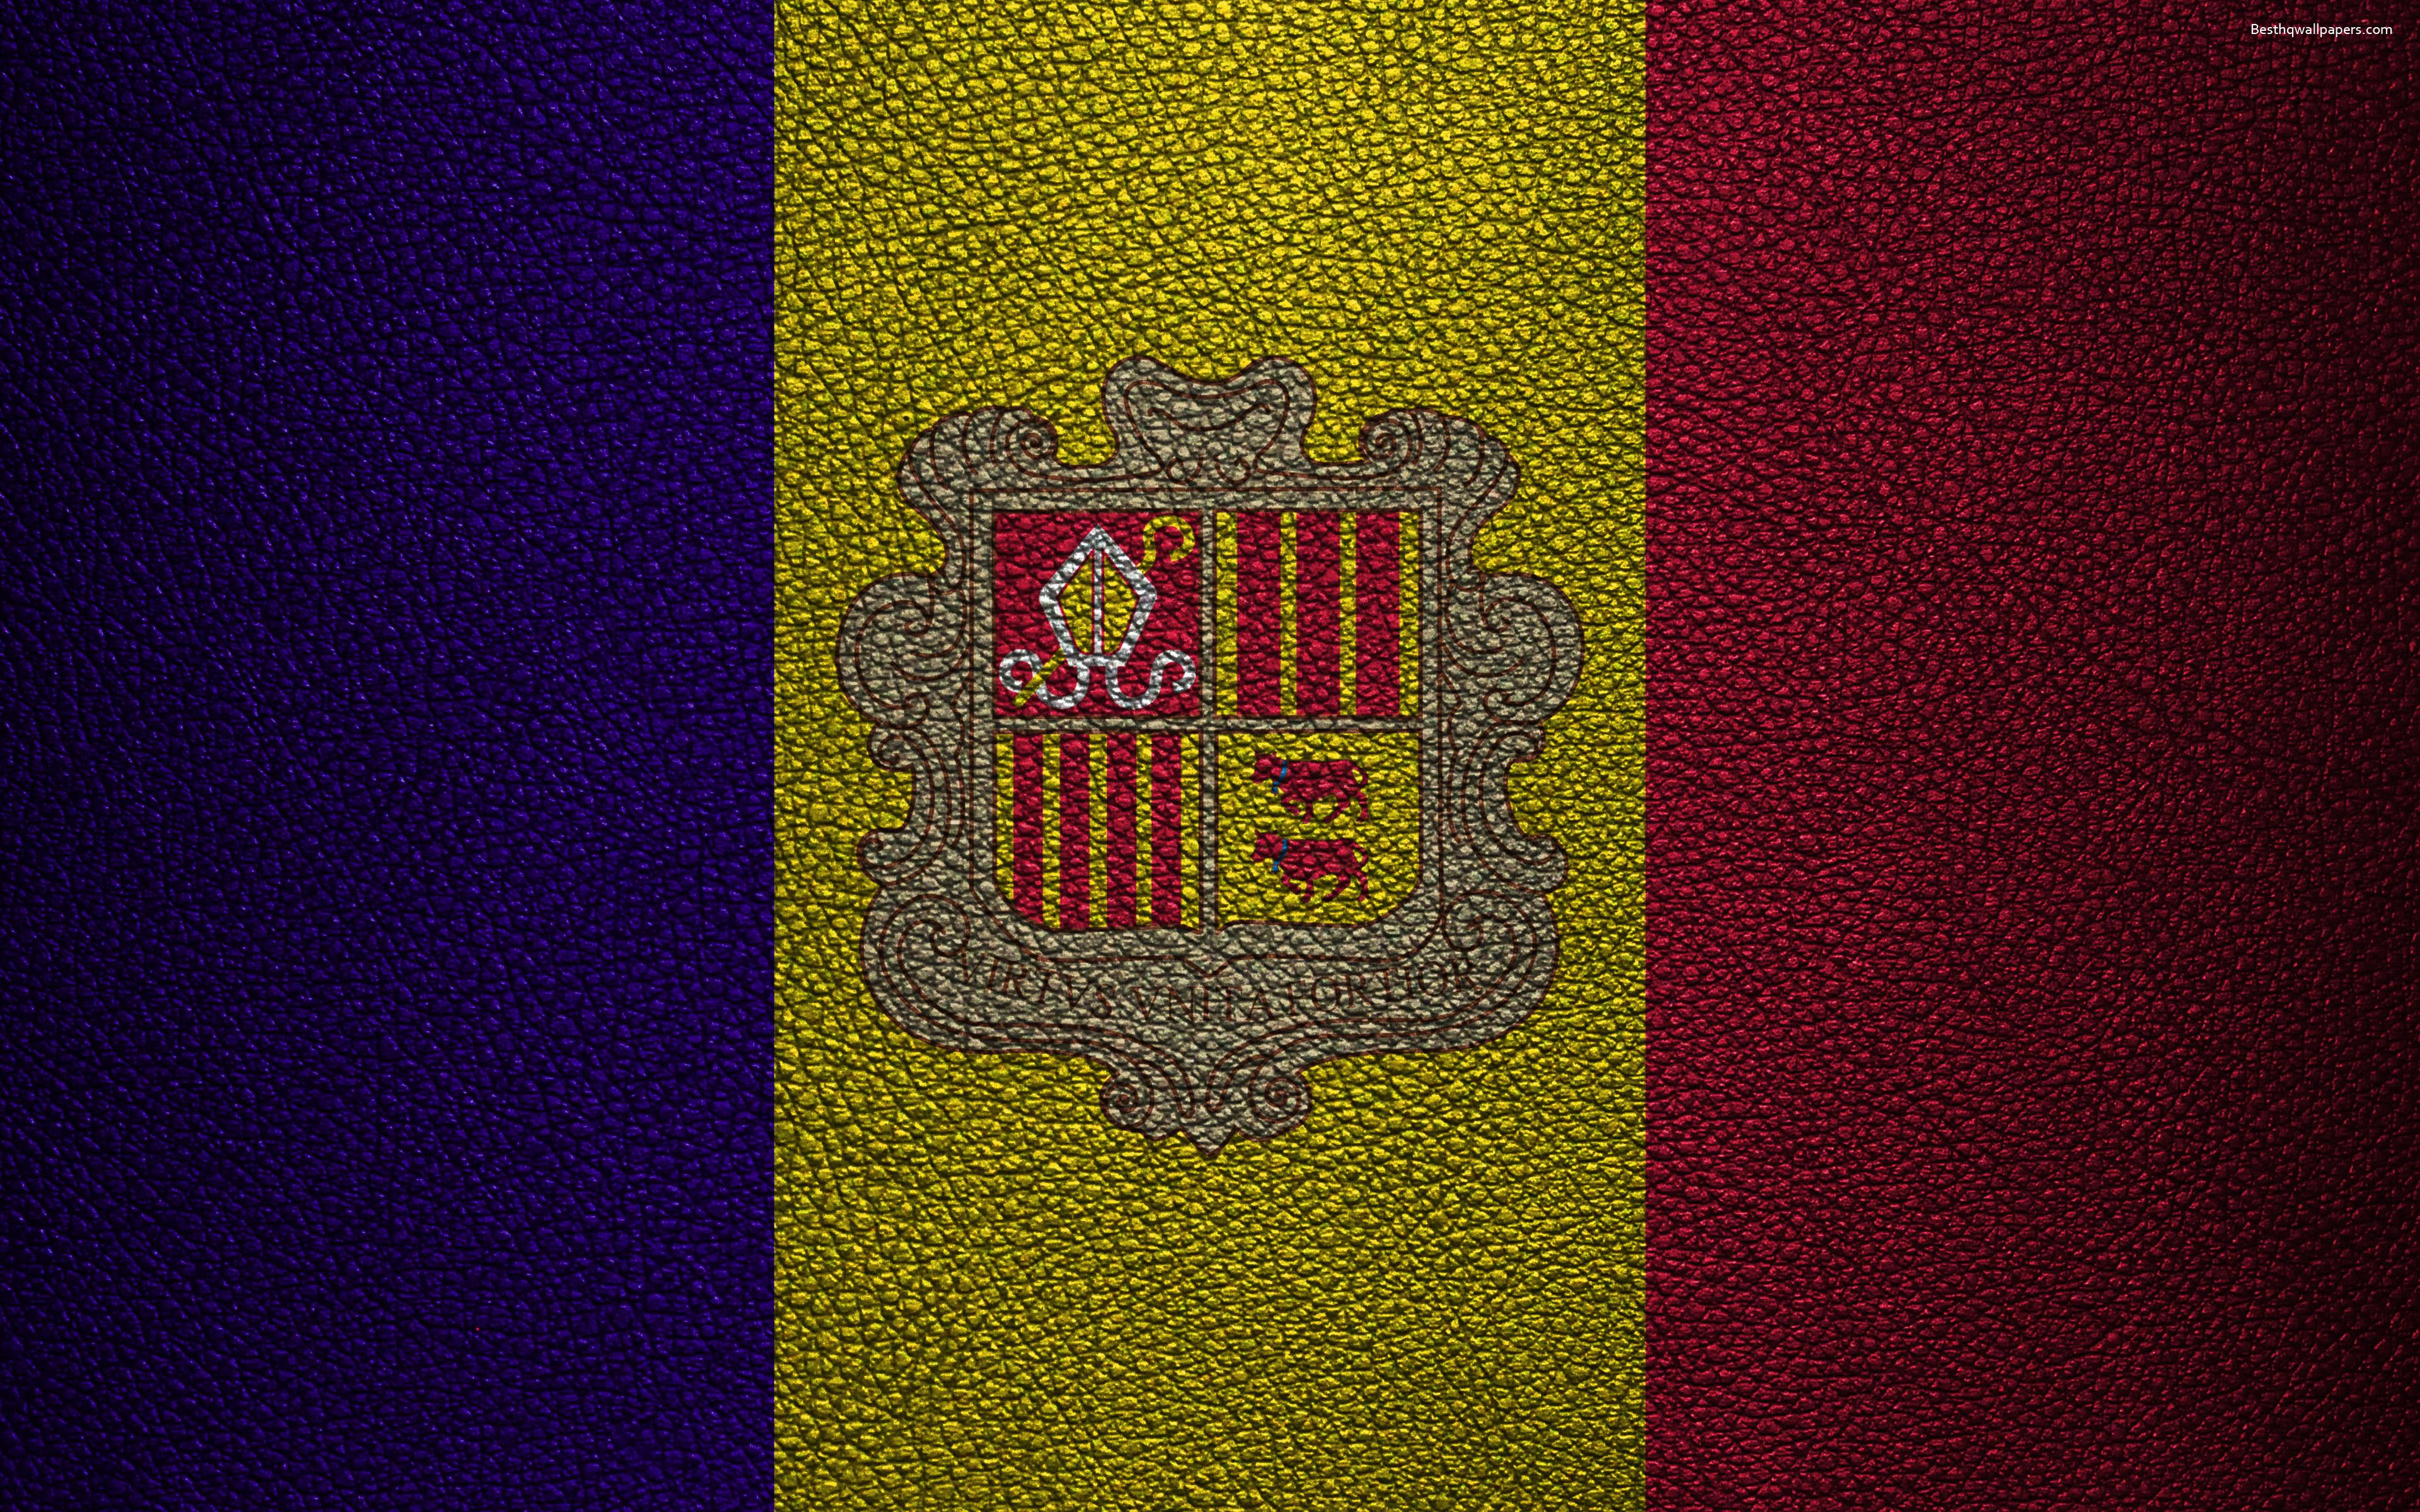 Download wallpapers Flag of Andorra, 4K, leather texture, Andorran